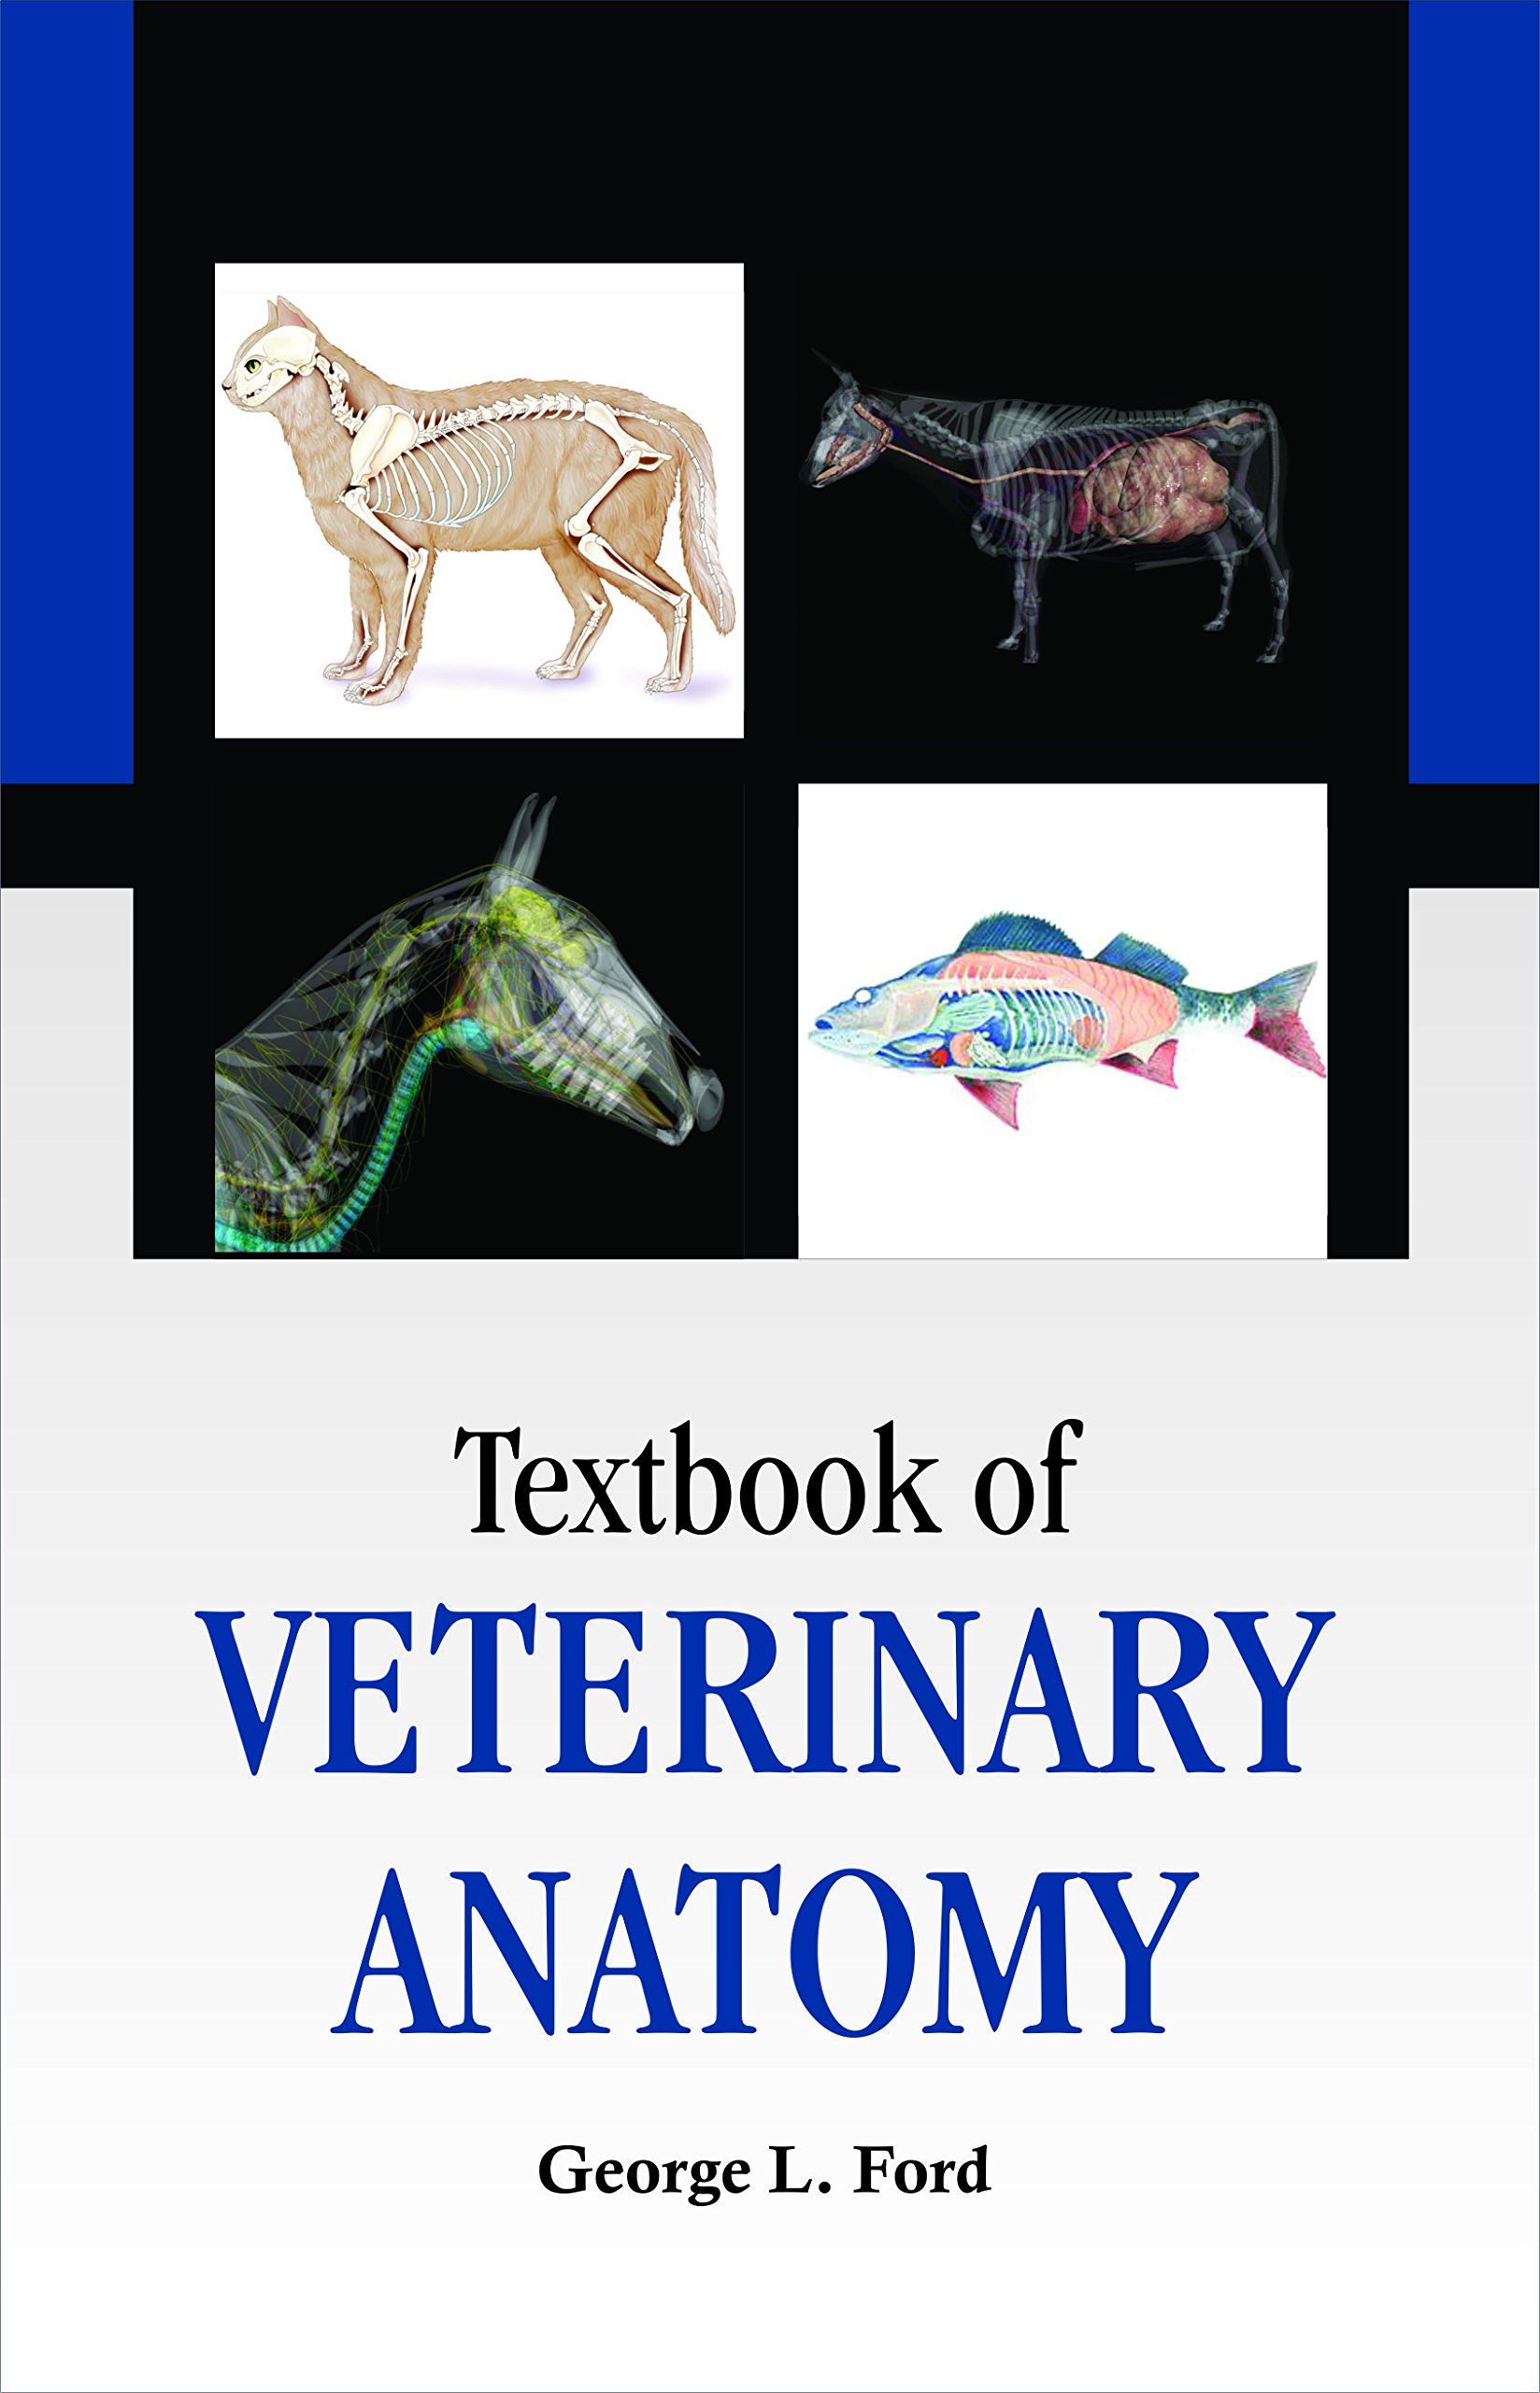 Textbook of Veterinary Anatomy: Amazon.co.uk: George L. Ford ...